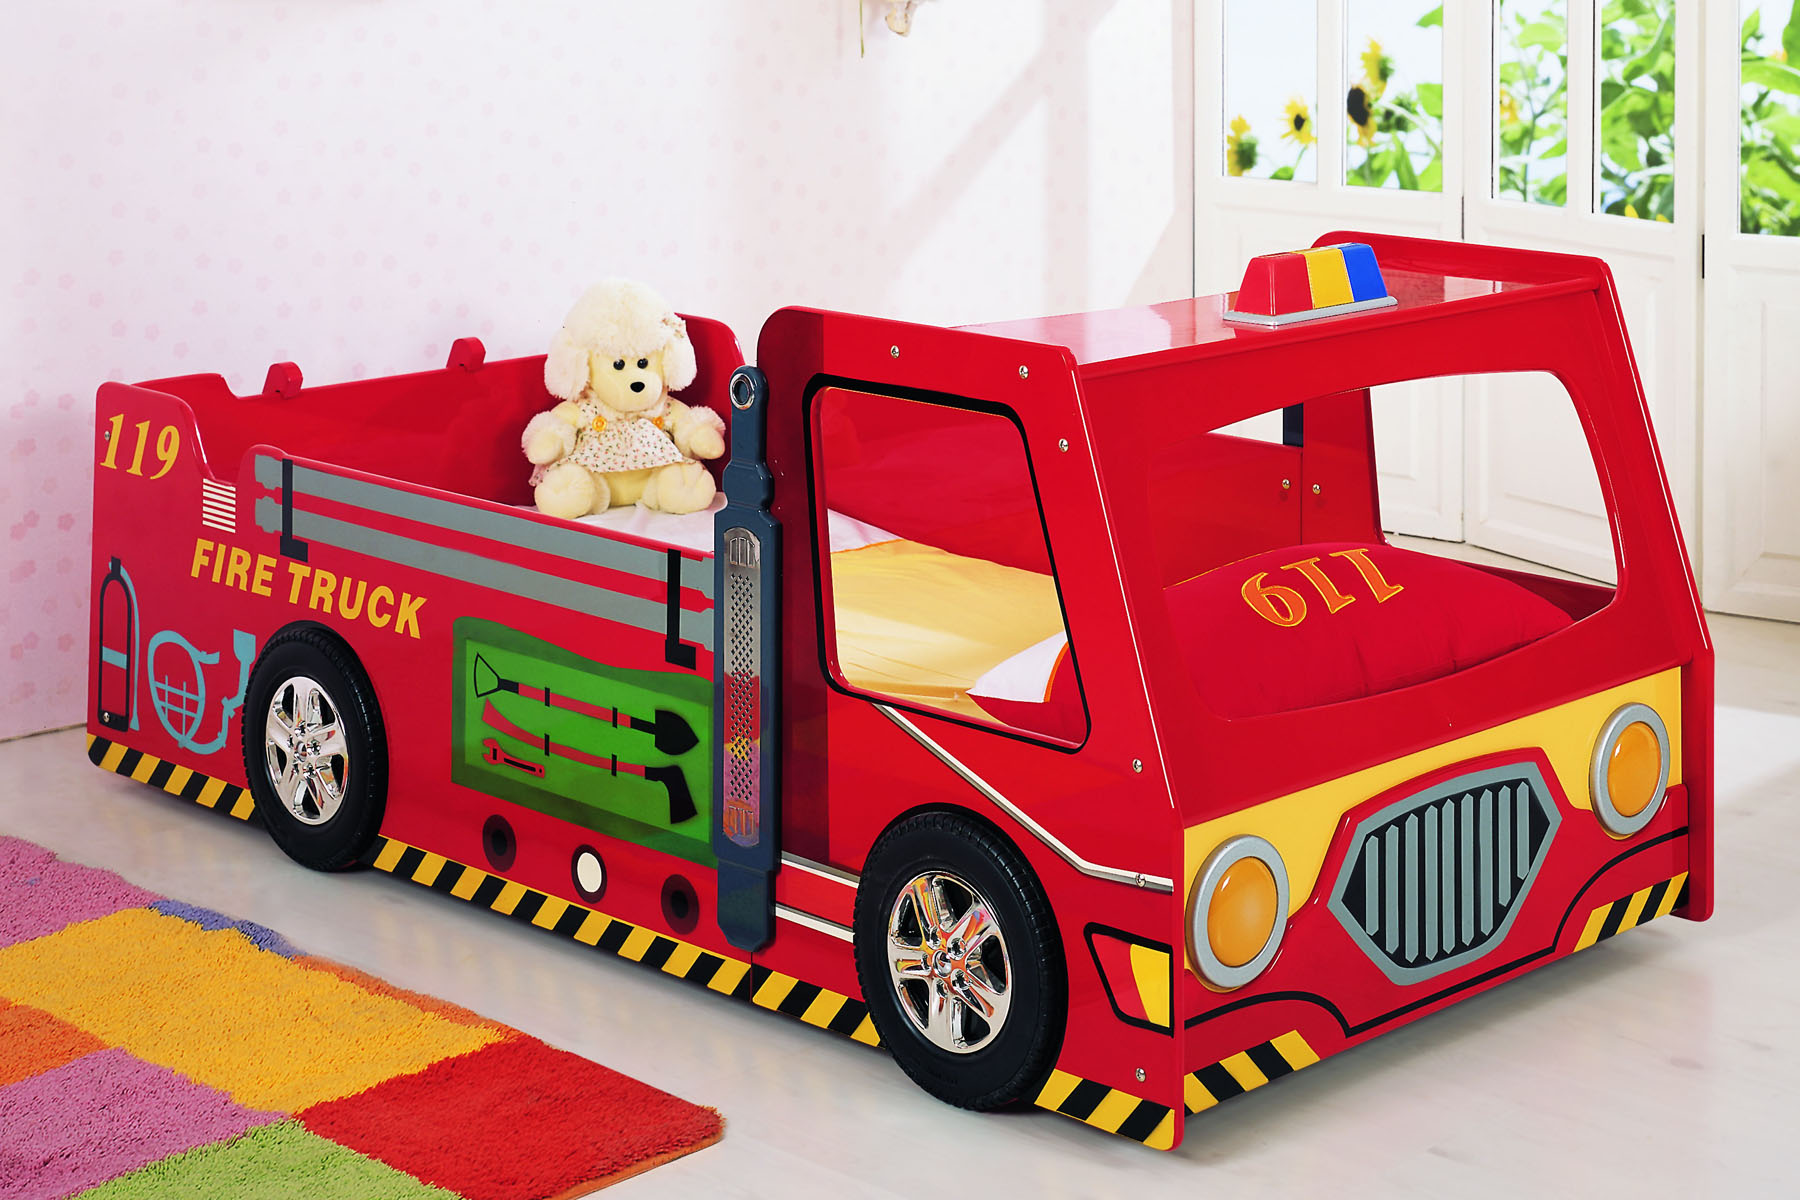 funny red fire truck race car beds for toddlers with cream bedding sheet and red pillow